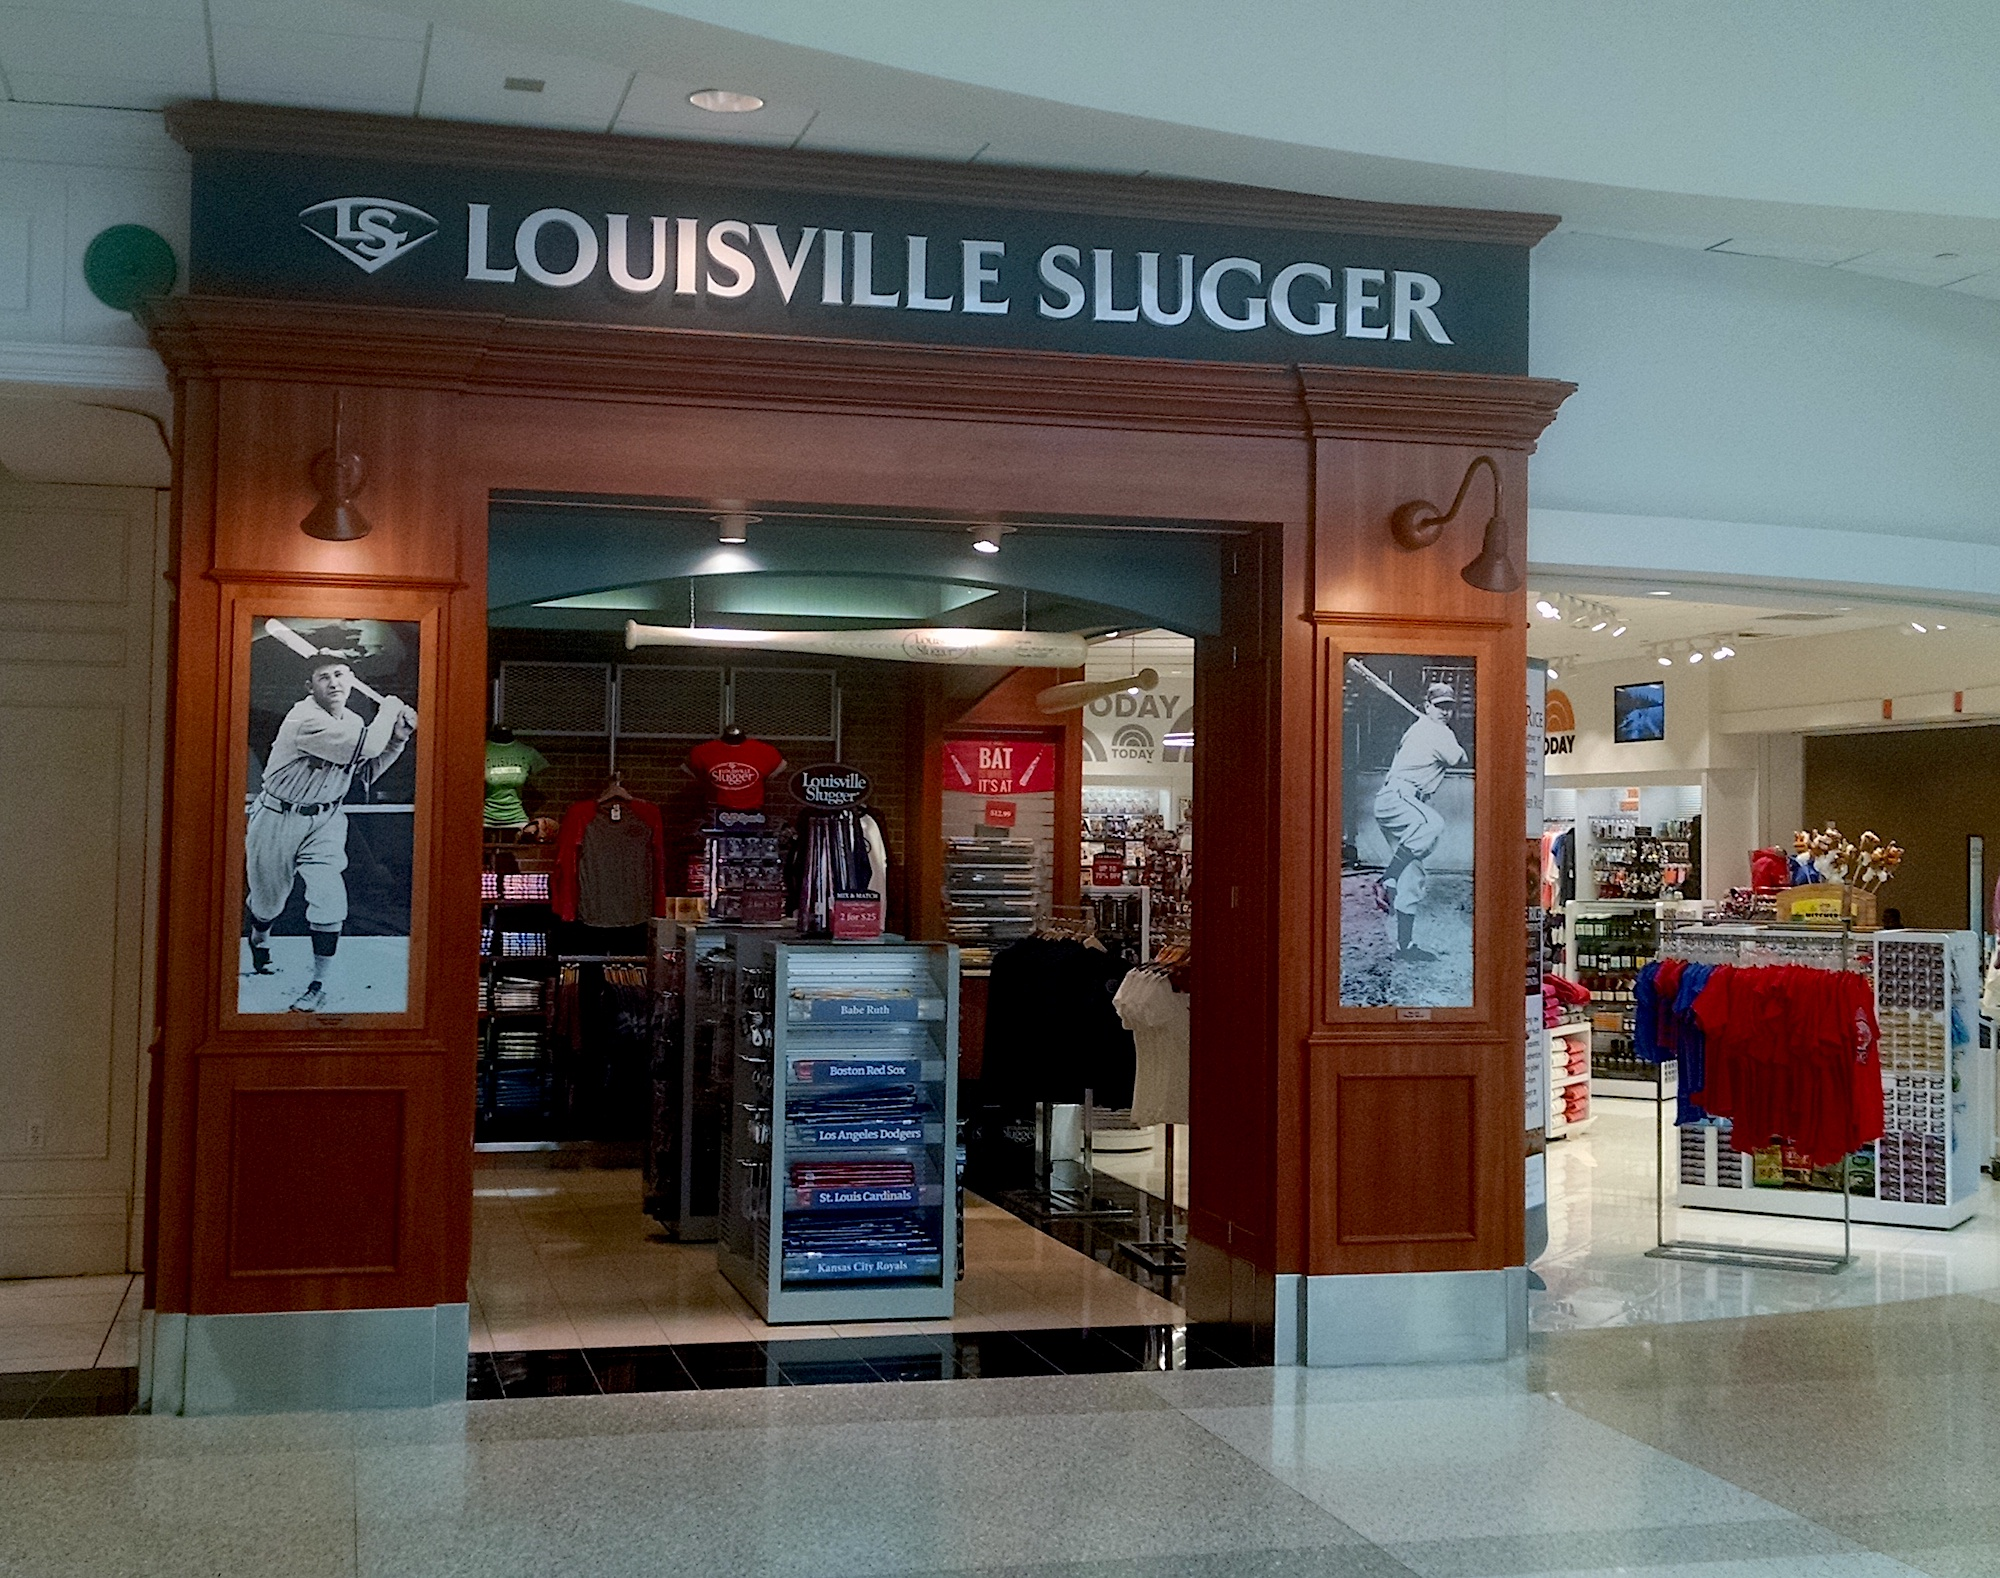 When I was a kid, the only things anyone wanted was a Louisville Slugger.